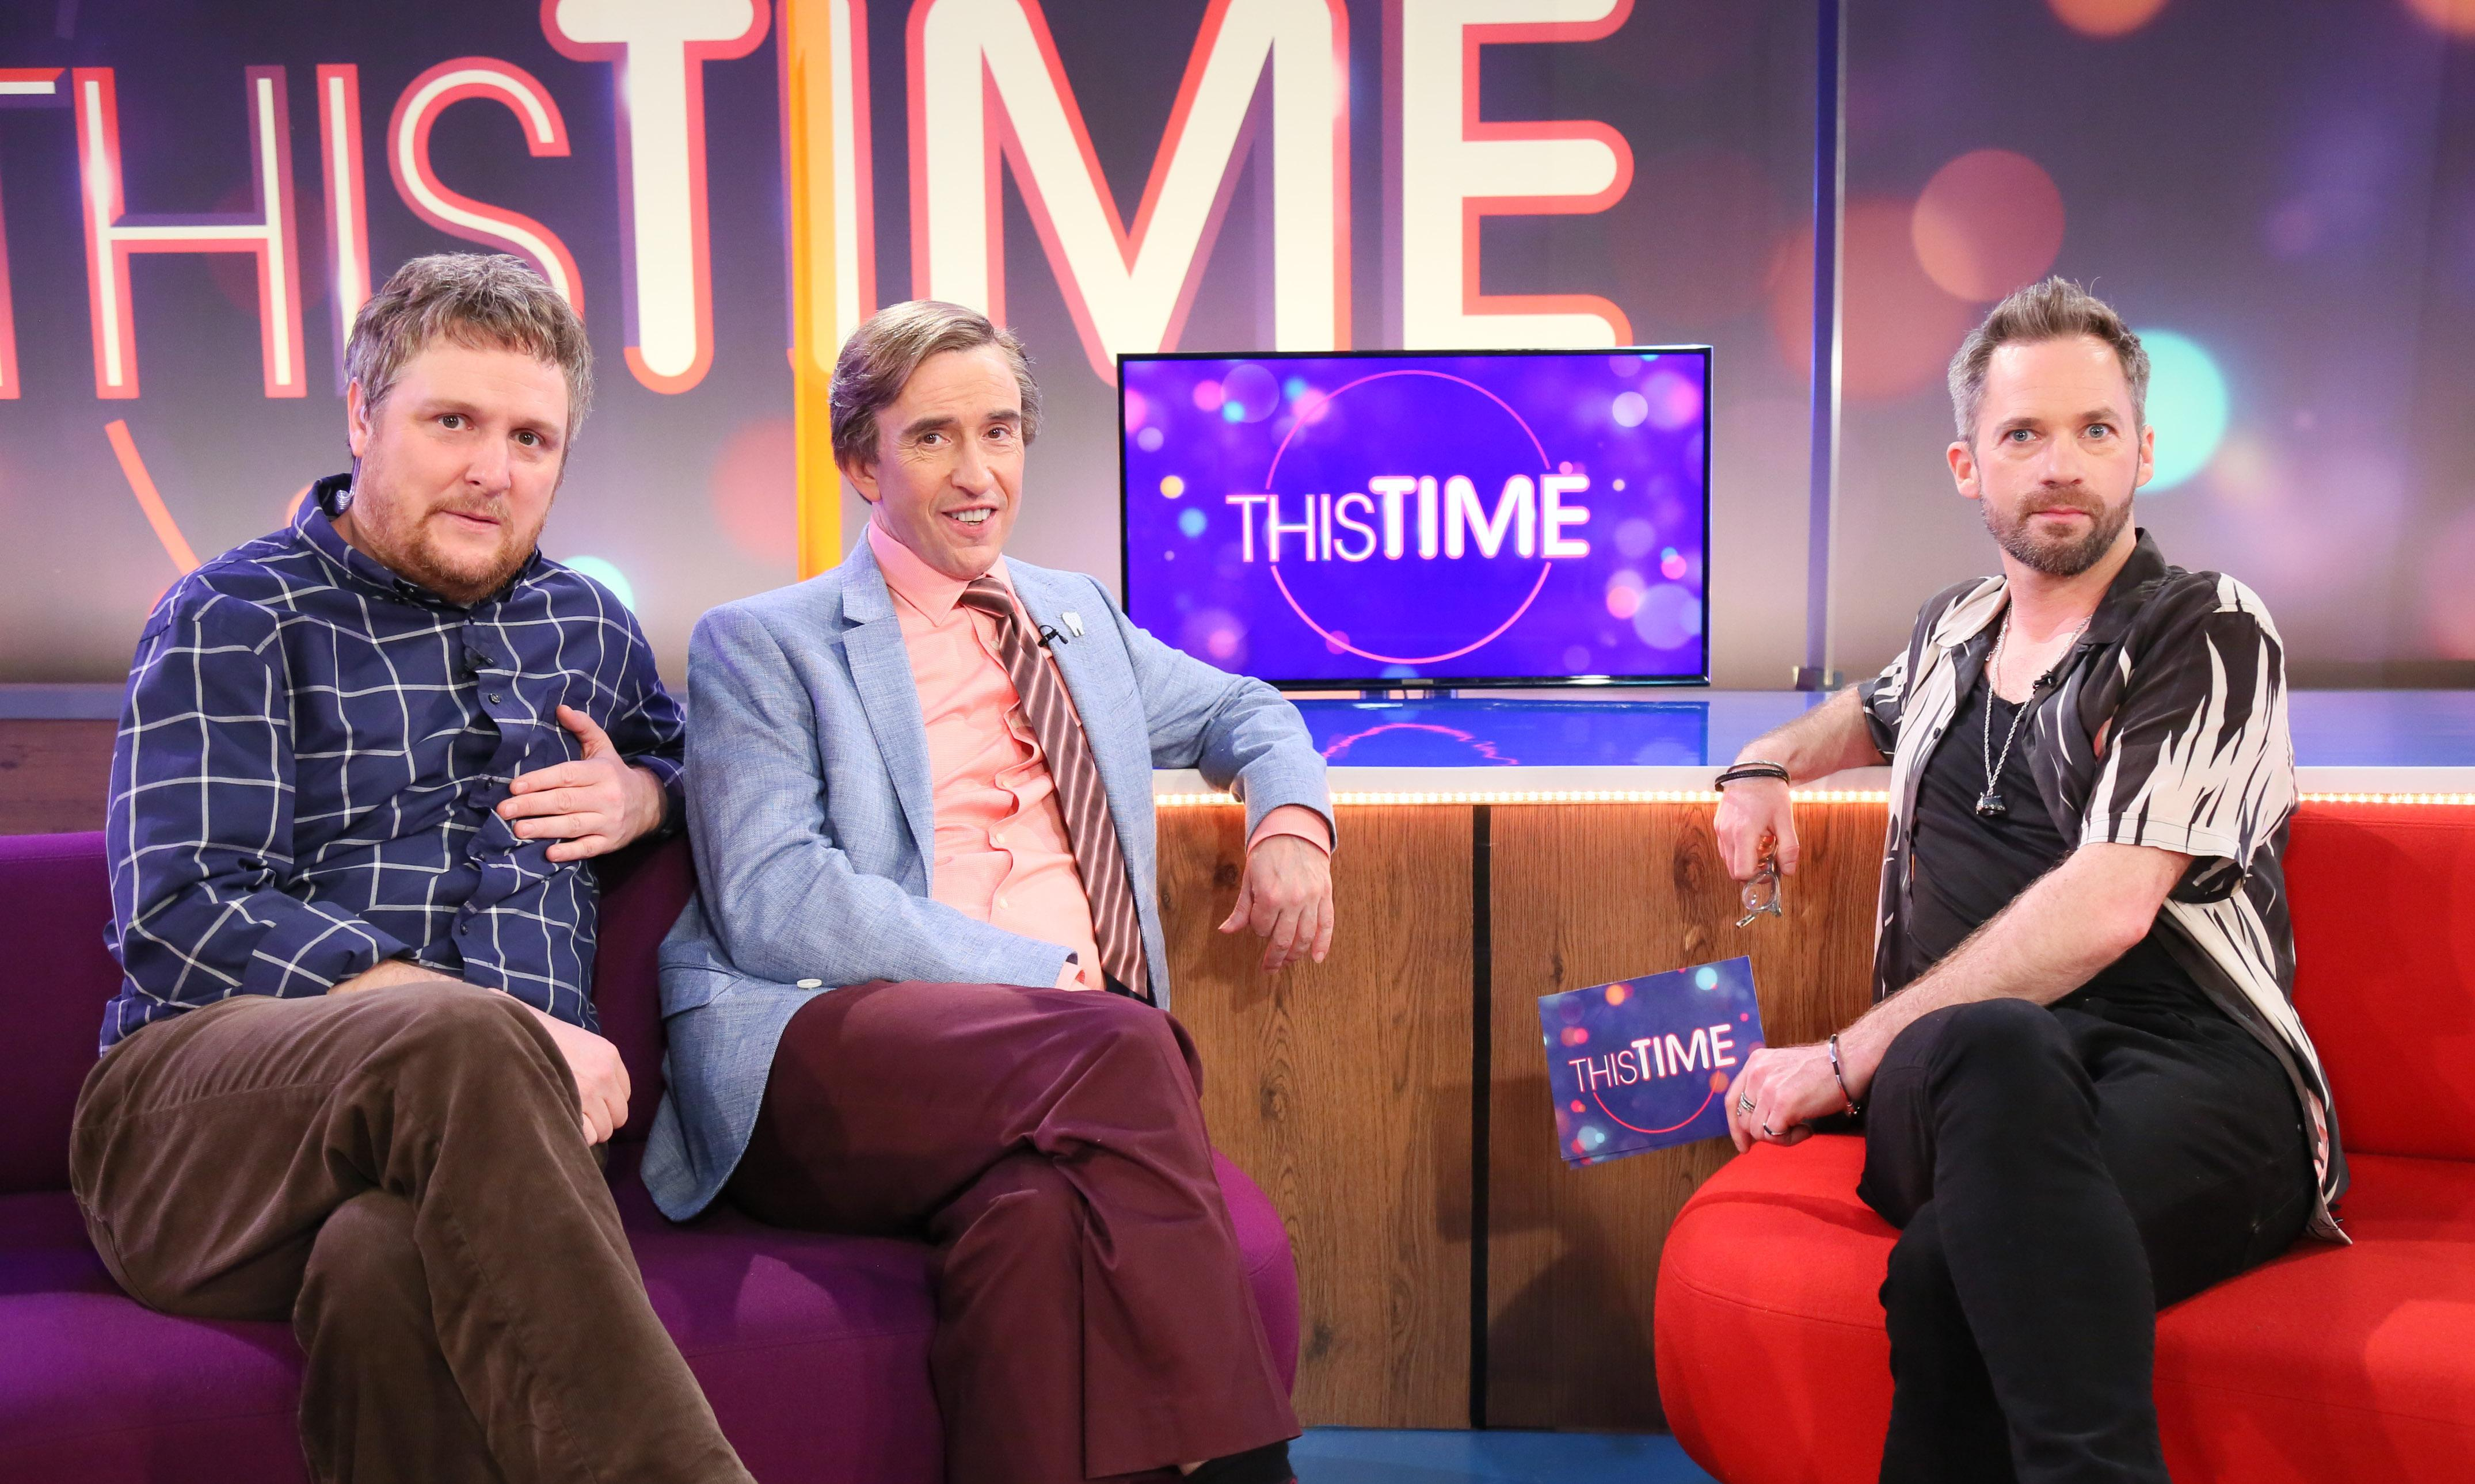 Is This Time Alan Partridge's last Aha!?